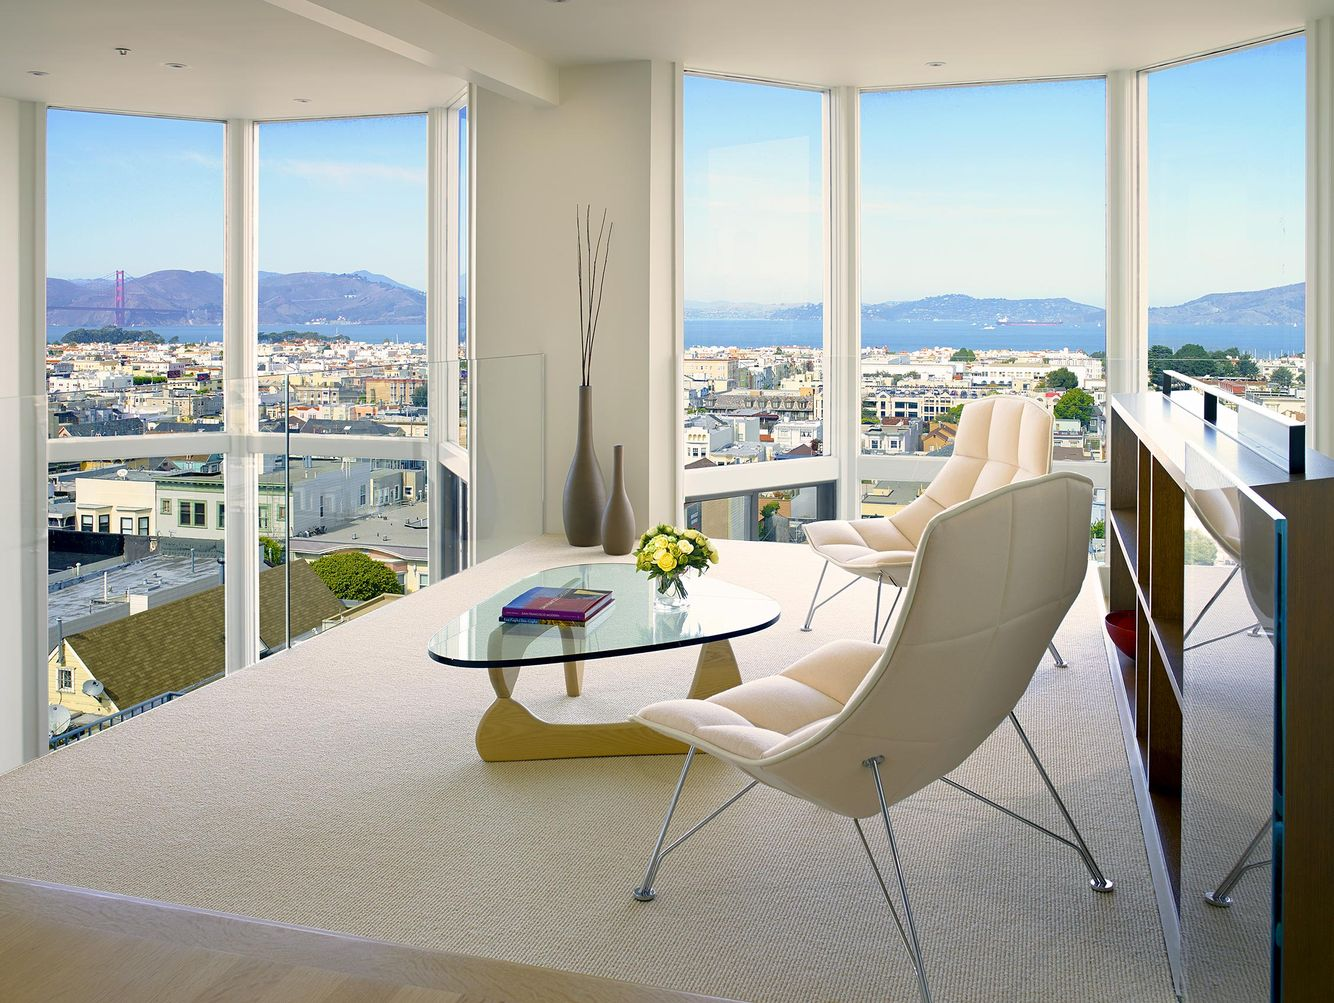 John-Sutton-Photography-Living Room View